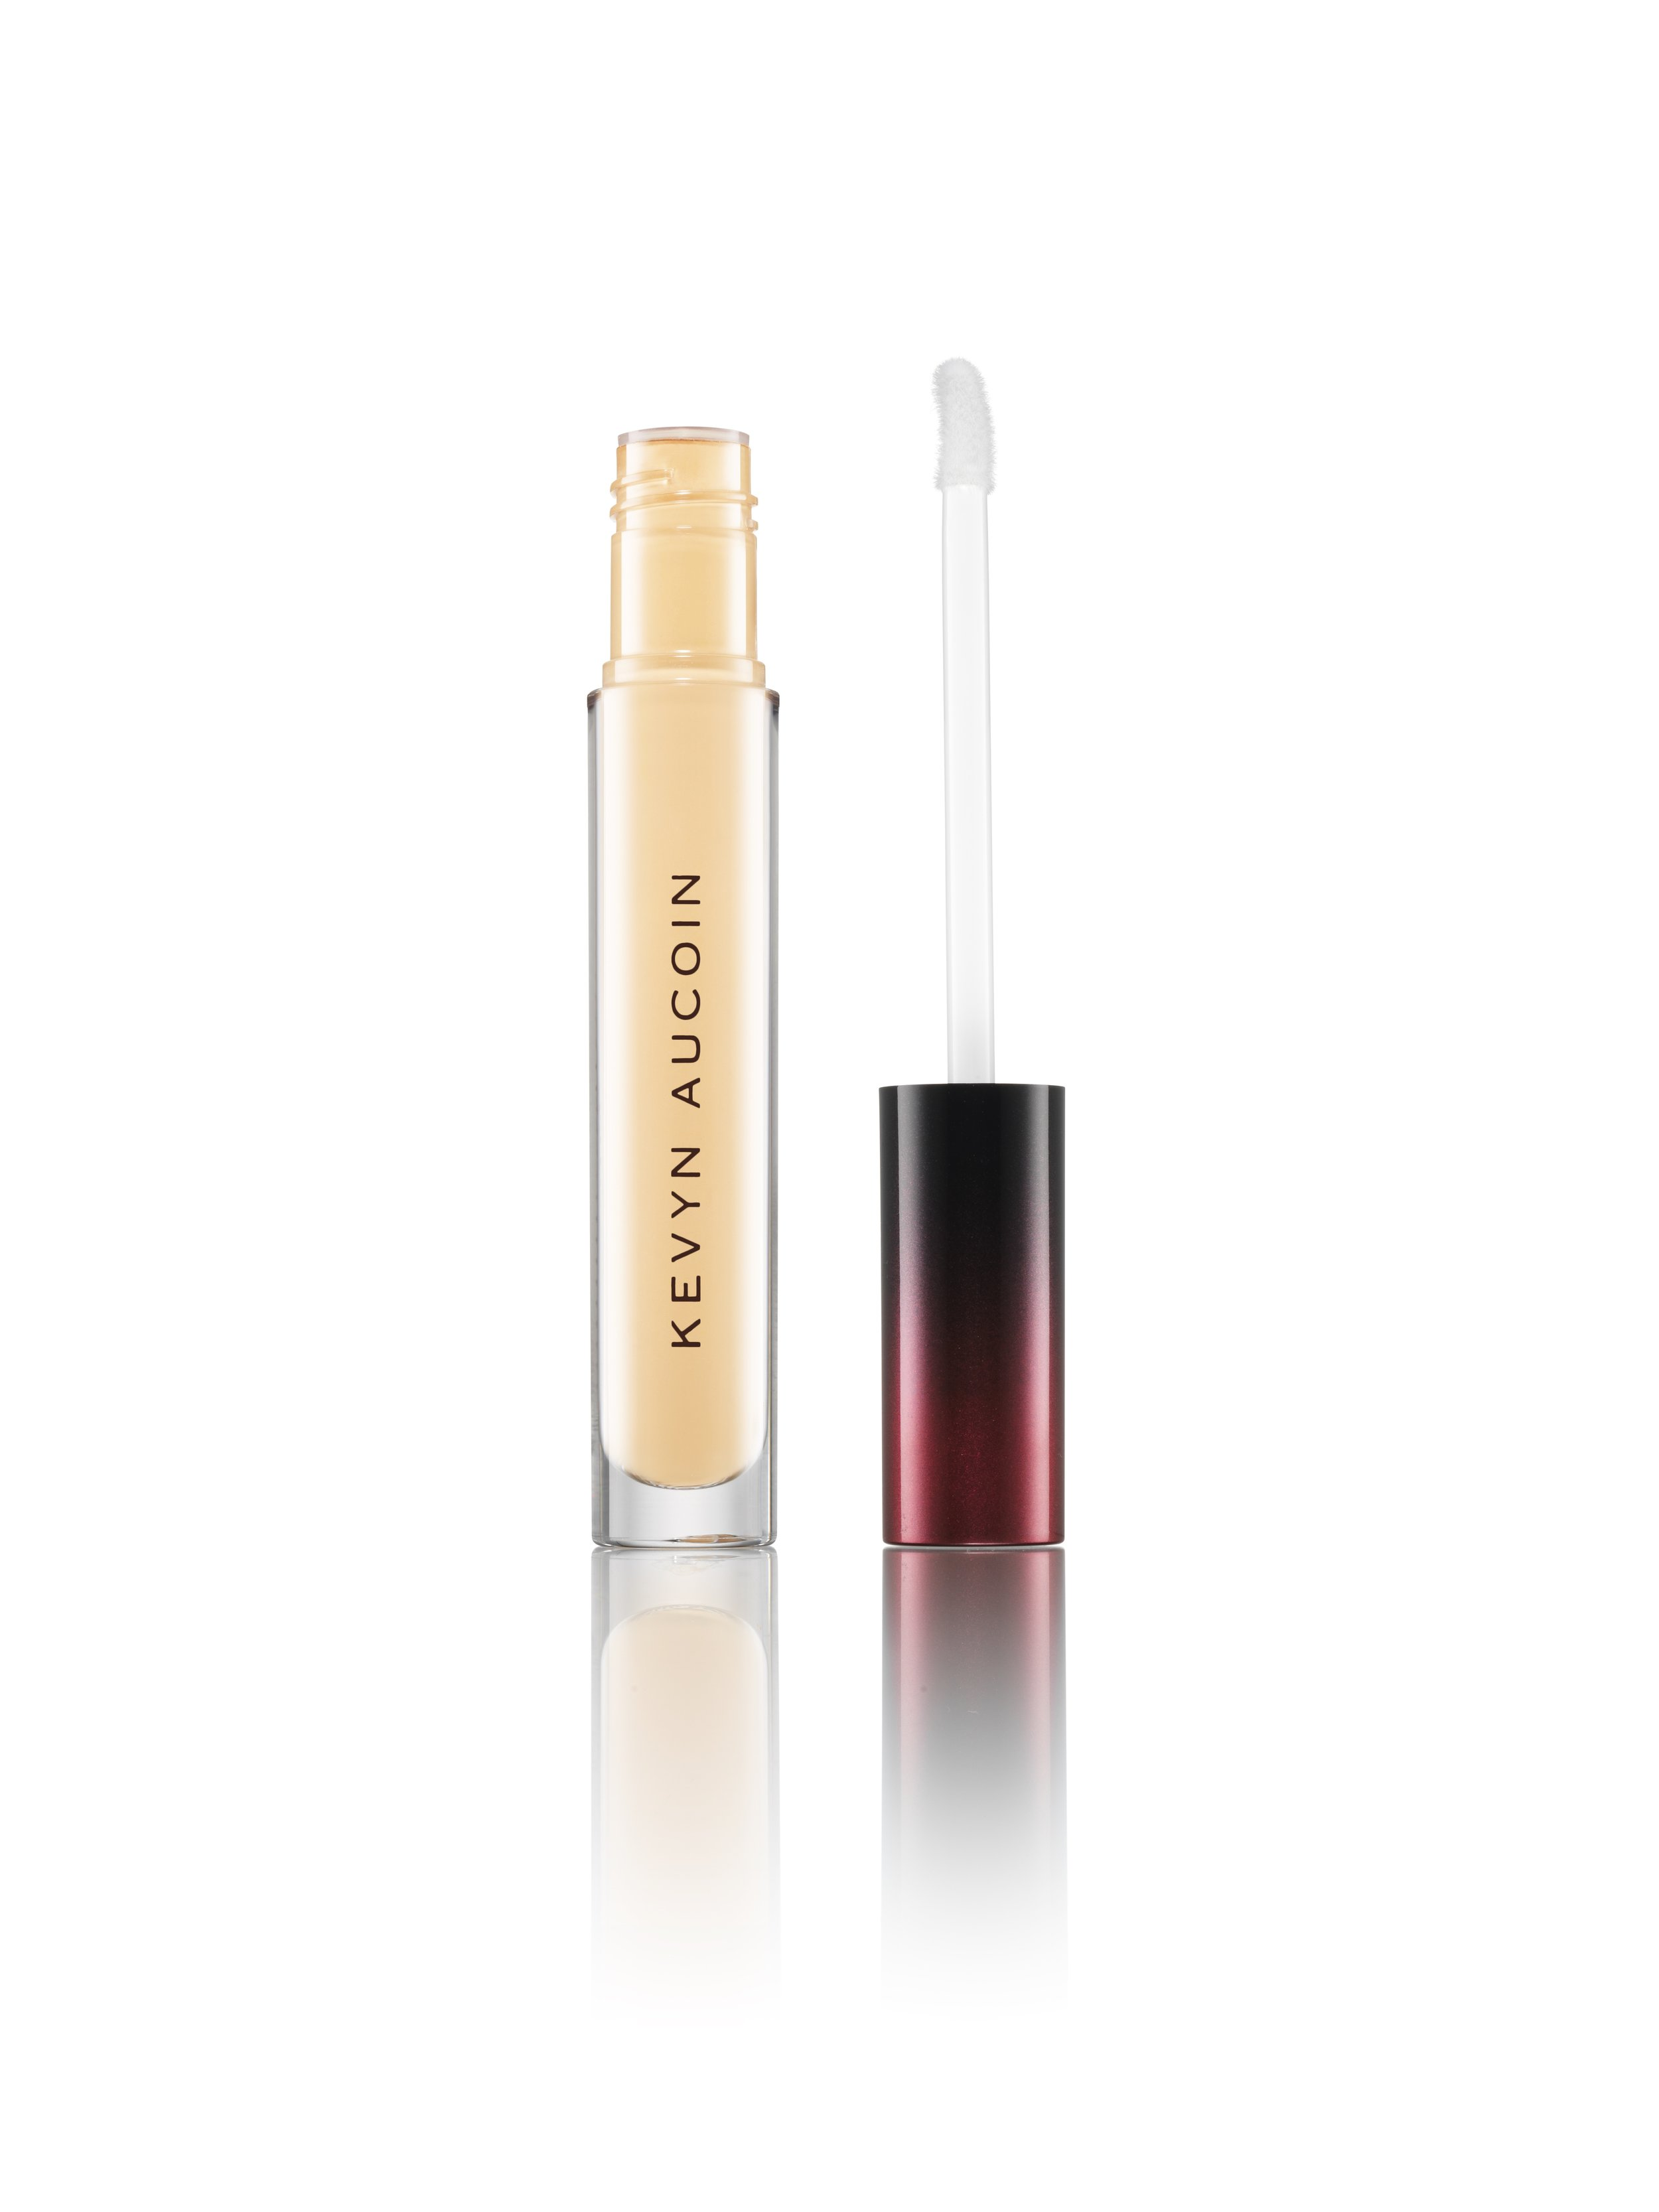 Kevyn Aucoin Etherealist Super Natural Concealer 01, £24, SpaceNK.jpeg